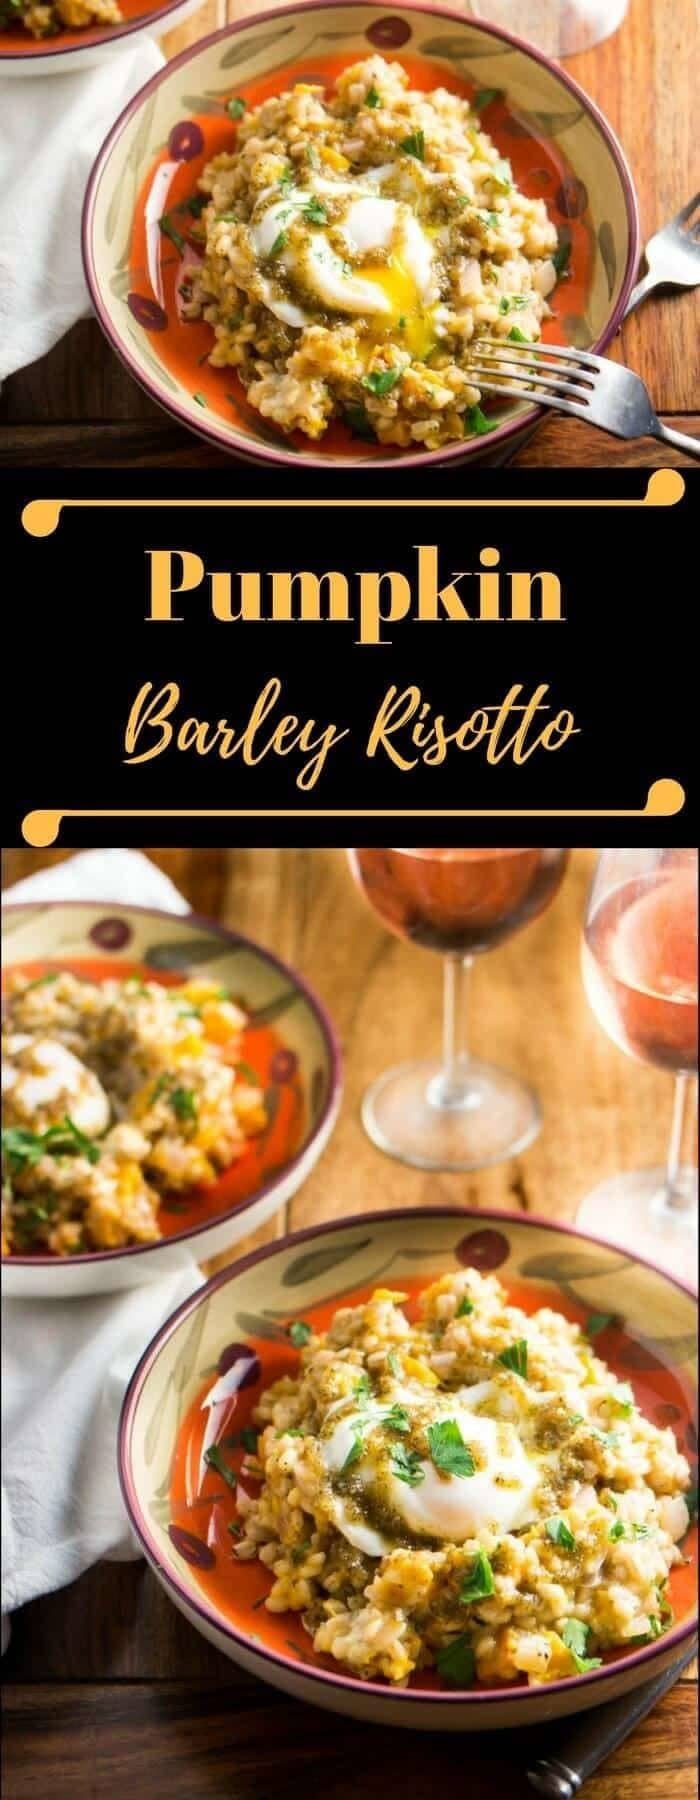 Pumpkin Barley Risotto - Pumpkin isn't just for pies and lattes! Roasted pumpkin, bleu cheese, and a sage pesto join barley in this robust and healthy vegetarian risotto! - A delicious, savory way to use a fall favorite - pumpkin. Pumpkin Barley Risotto isa rustic risotto replete with the flavors of sage, bleu cheese, roasted pumpkin, and walnuts. Topped with a farm fresh runny egg, what isn't there to like? fall recipes | vegetarian risotto | pumpkin risotto |